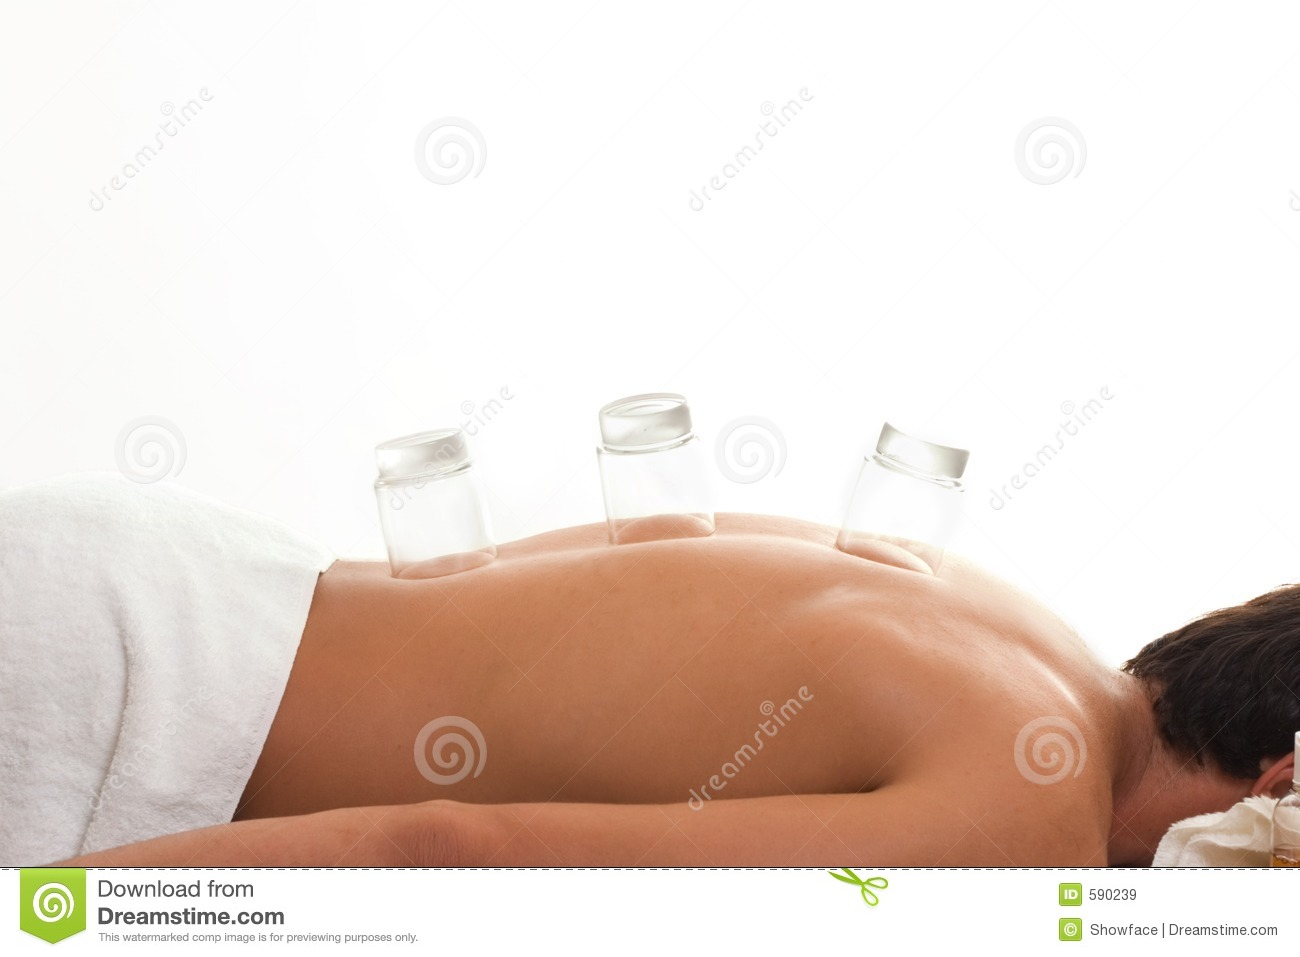 Cupping Therapy Royalty Free Stock Images - Image: 590239